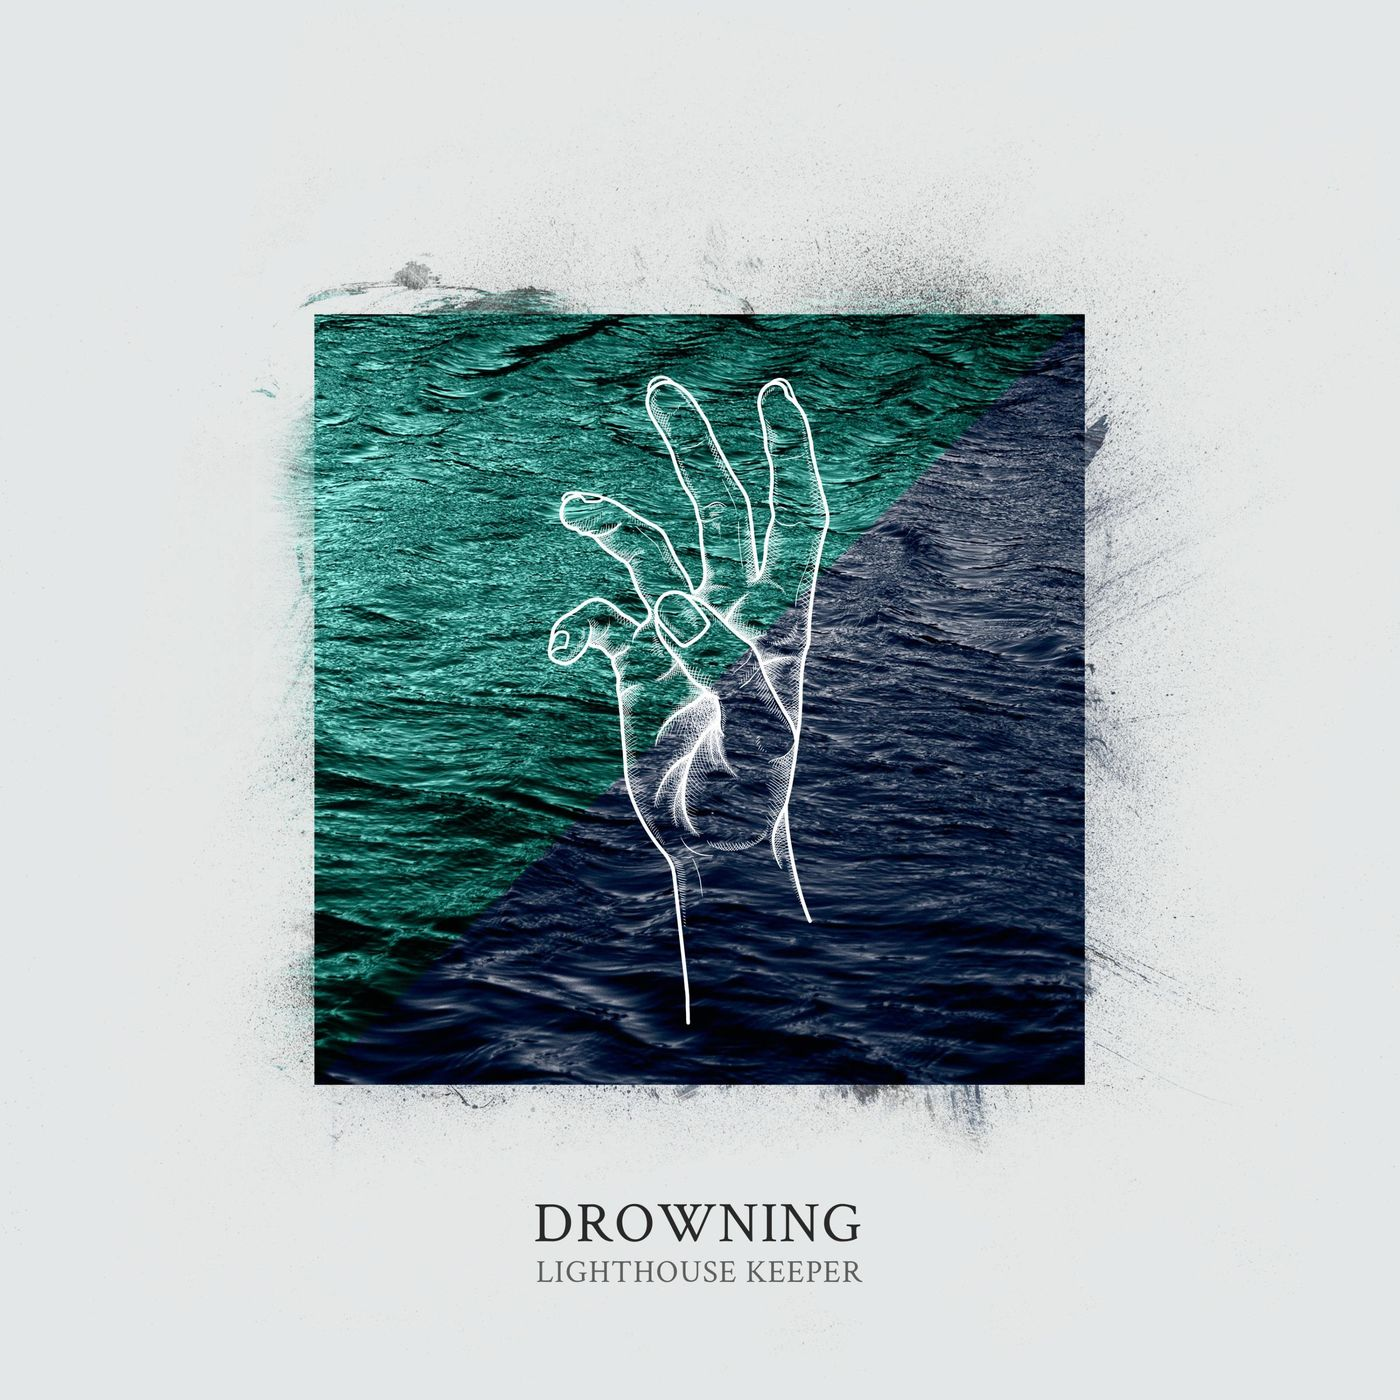 Lighthouse Keeper - Drowning (2021)